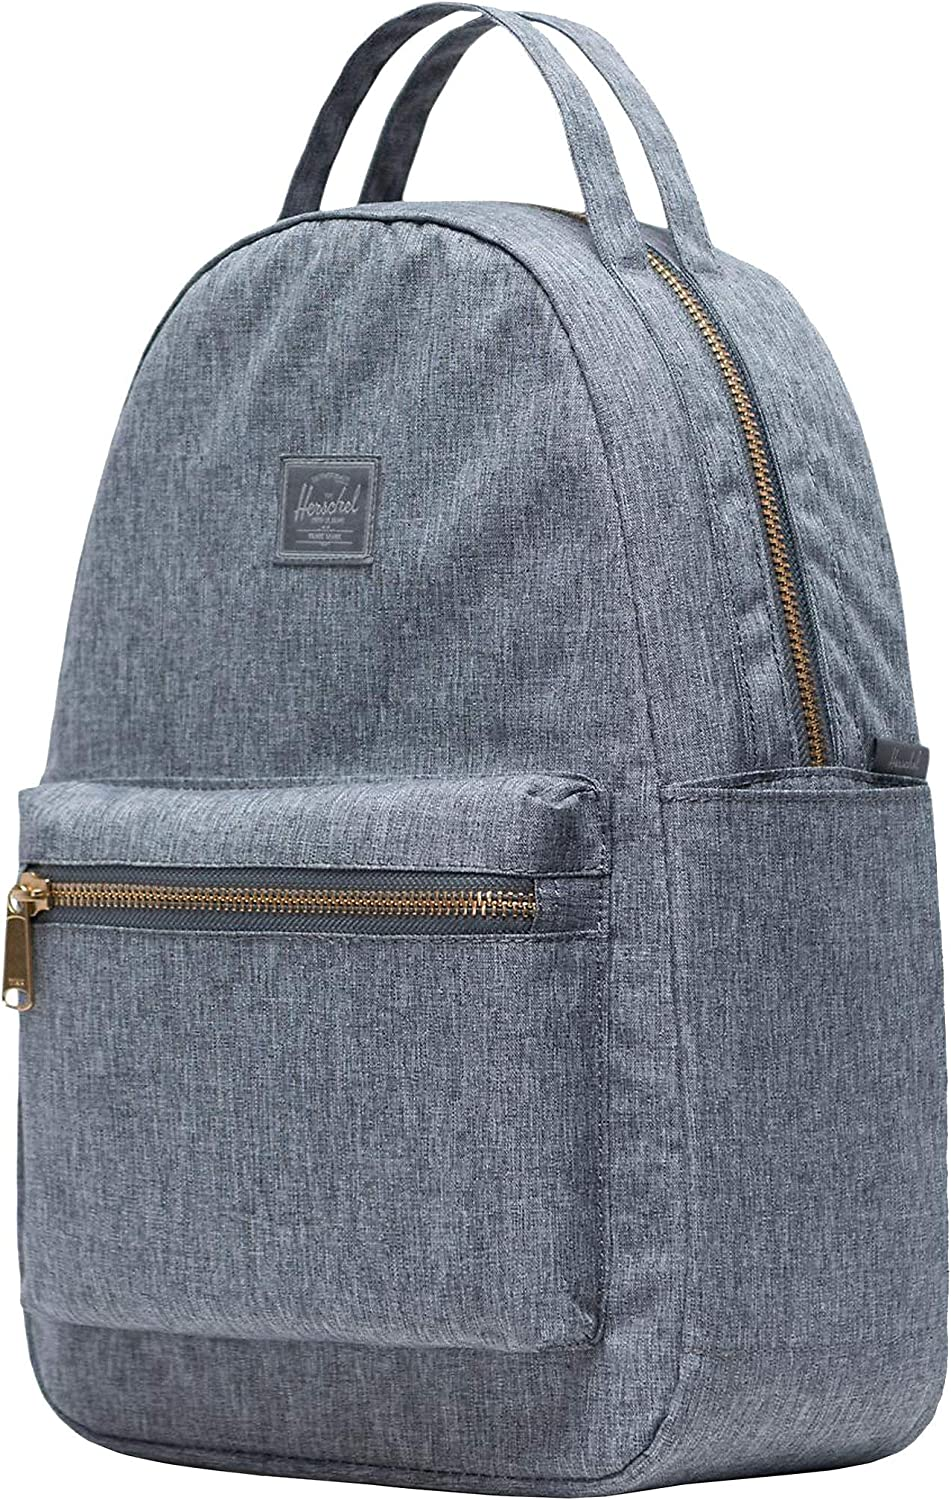 Herschel Supply Co. Nova Small Light